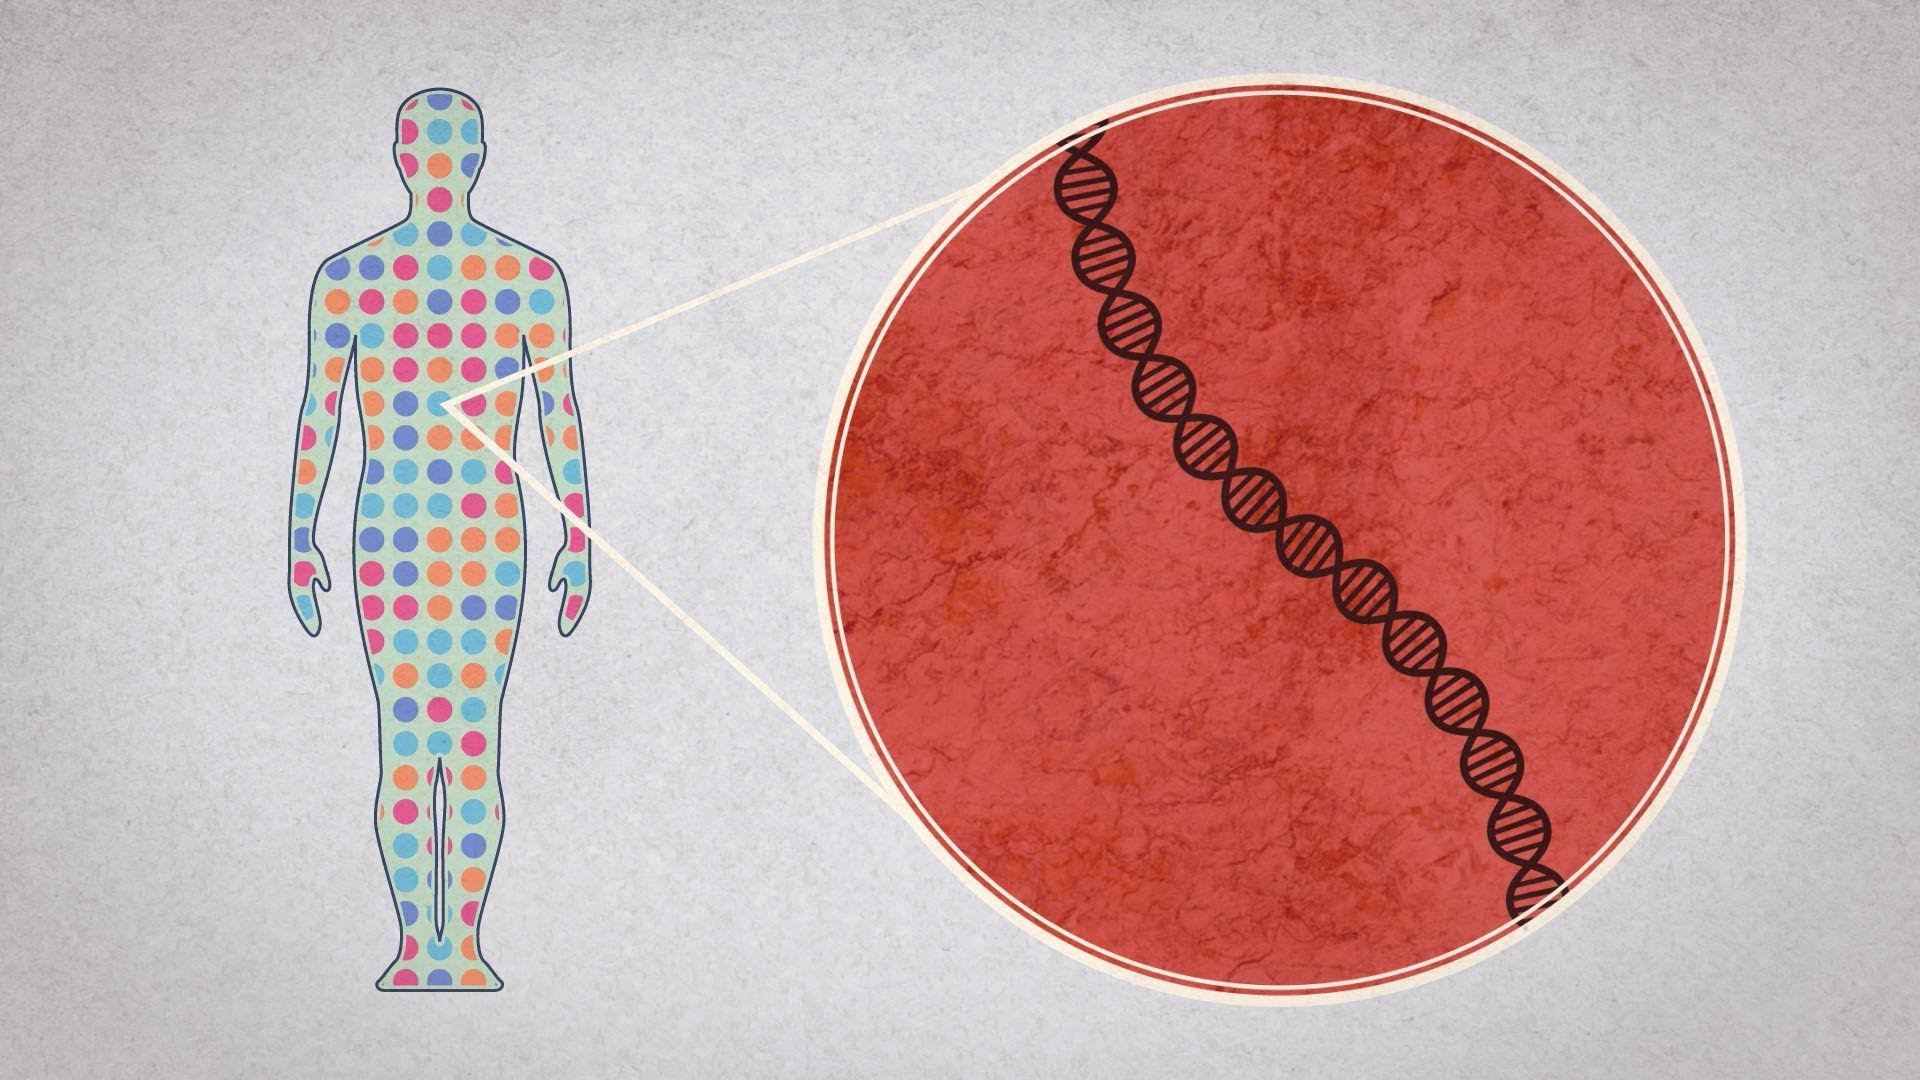 Decoding Human Genome & Obesity